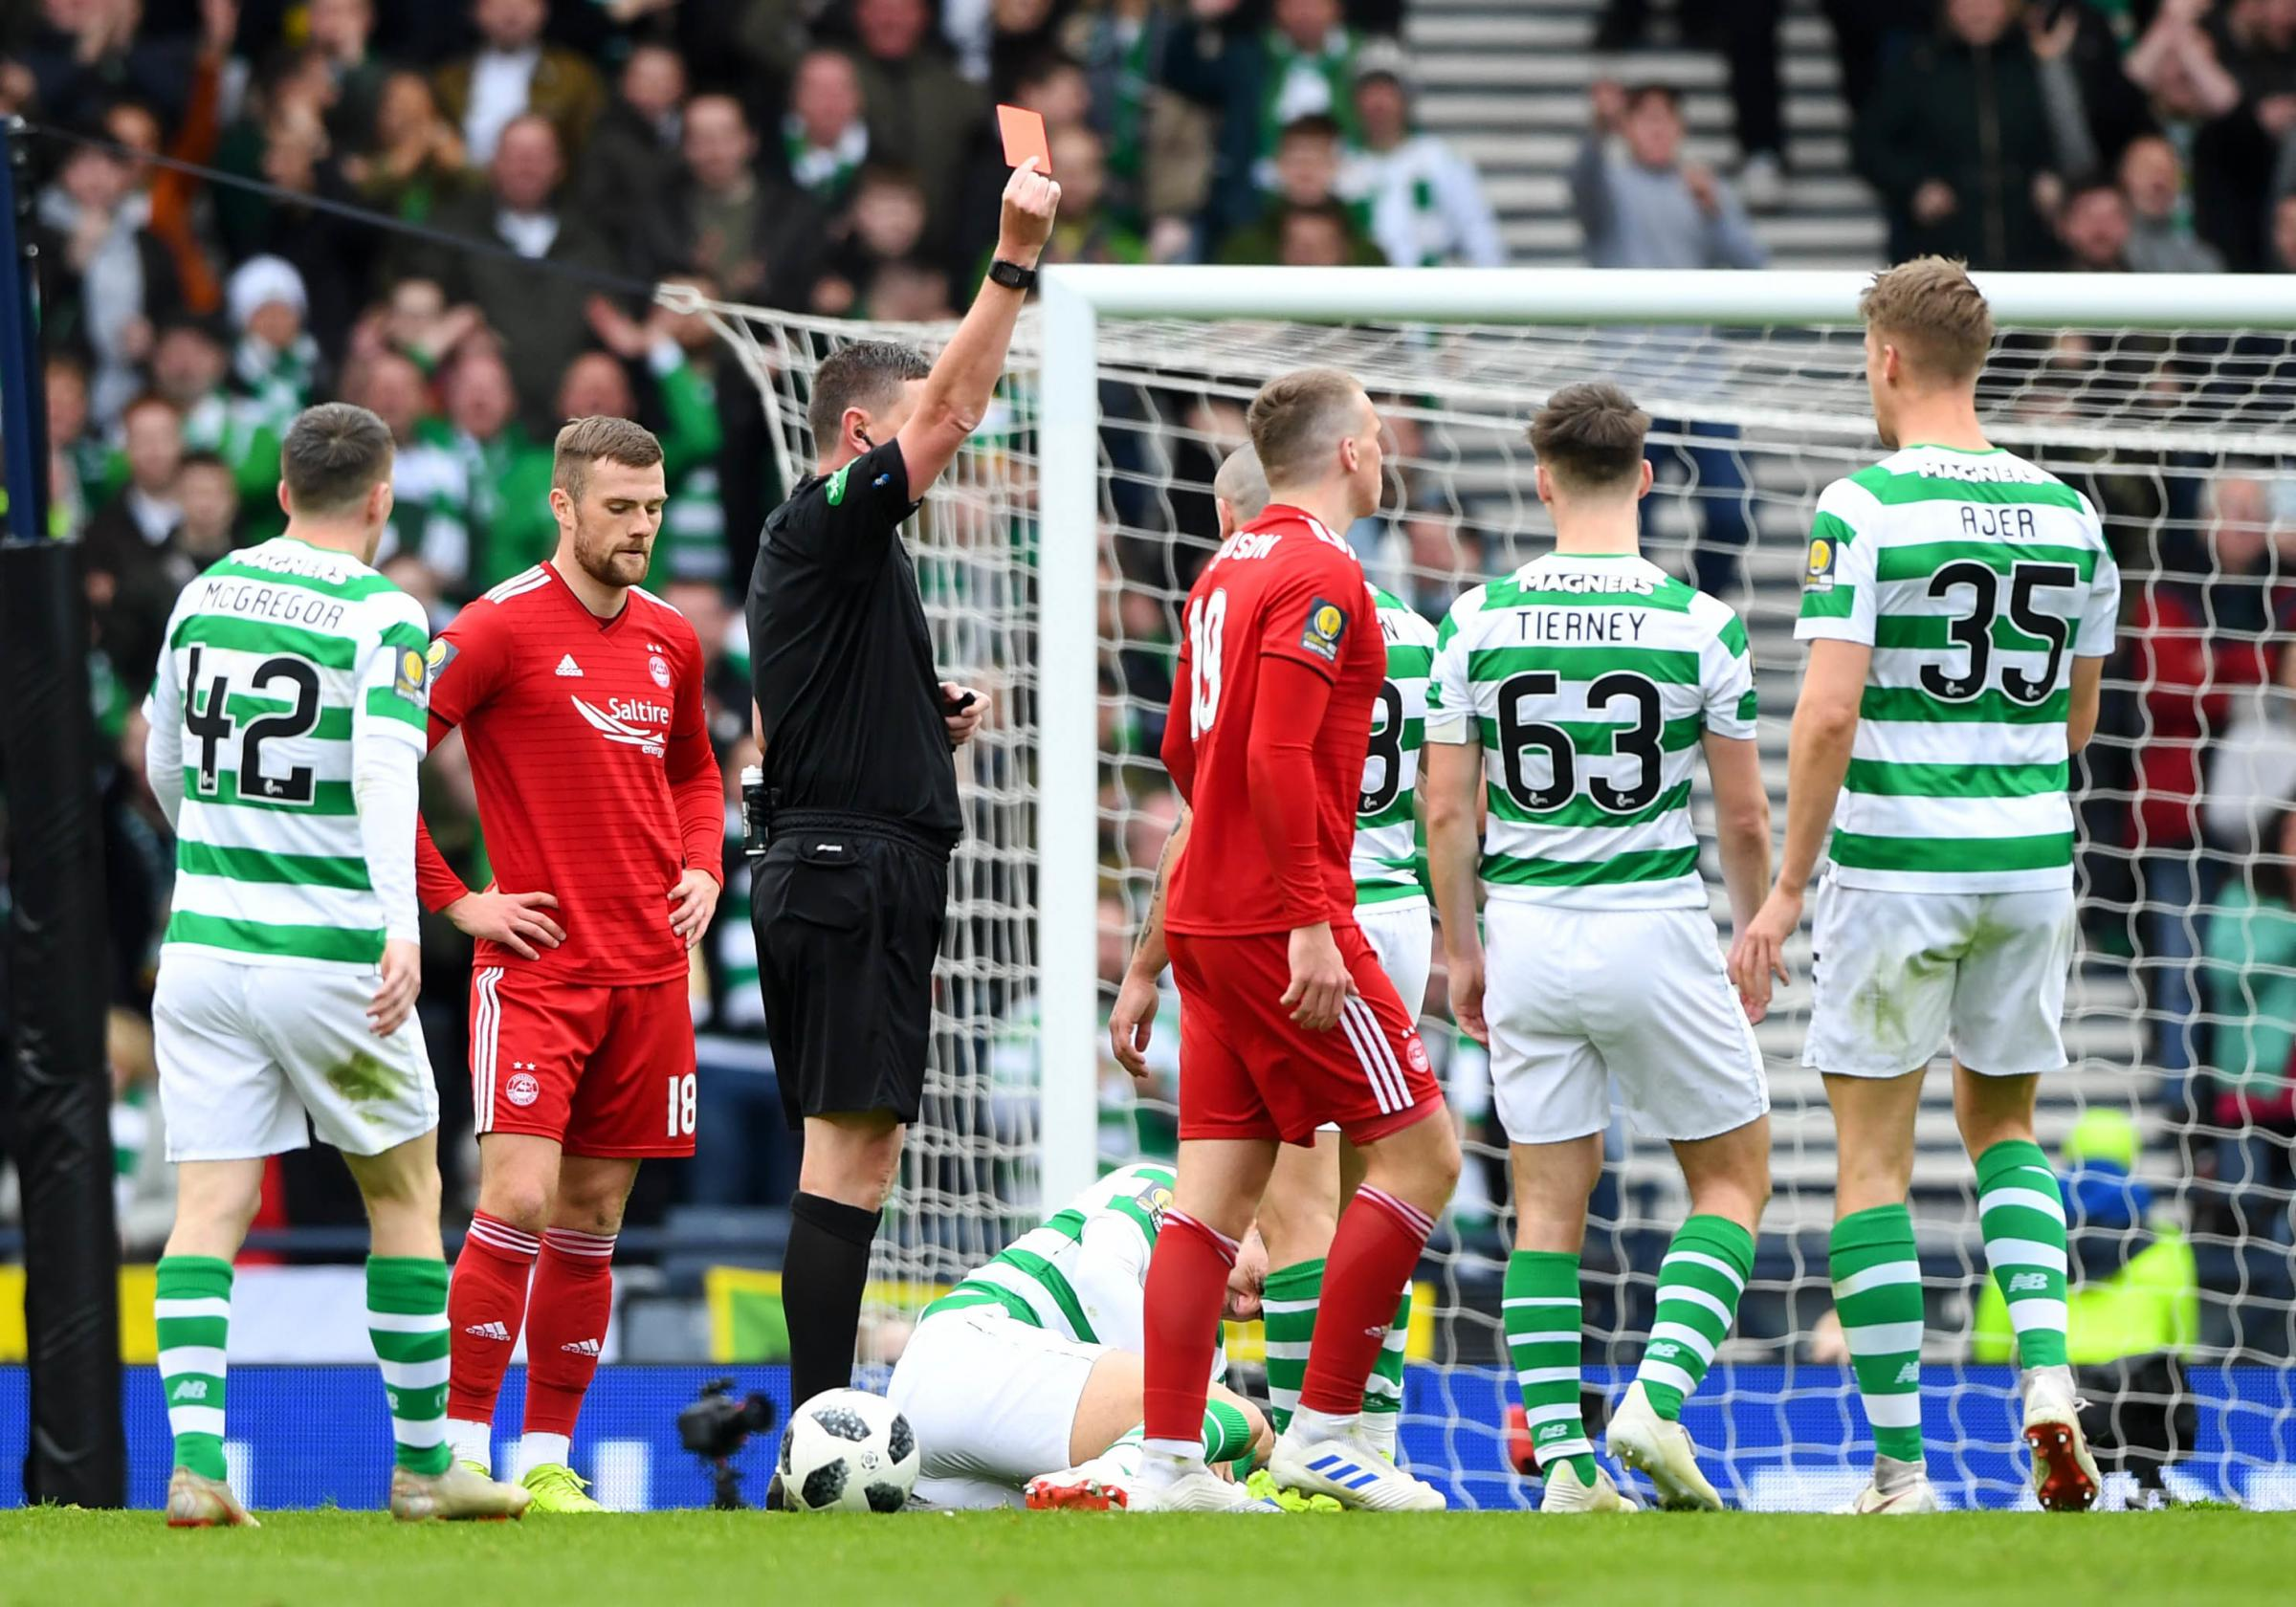 Lewis Ferguson was one of two Aberdeen players sent off against Celtic, while manager Derek McInnes was sent to the stand.